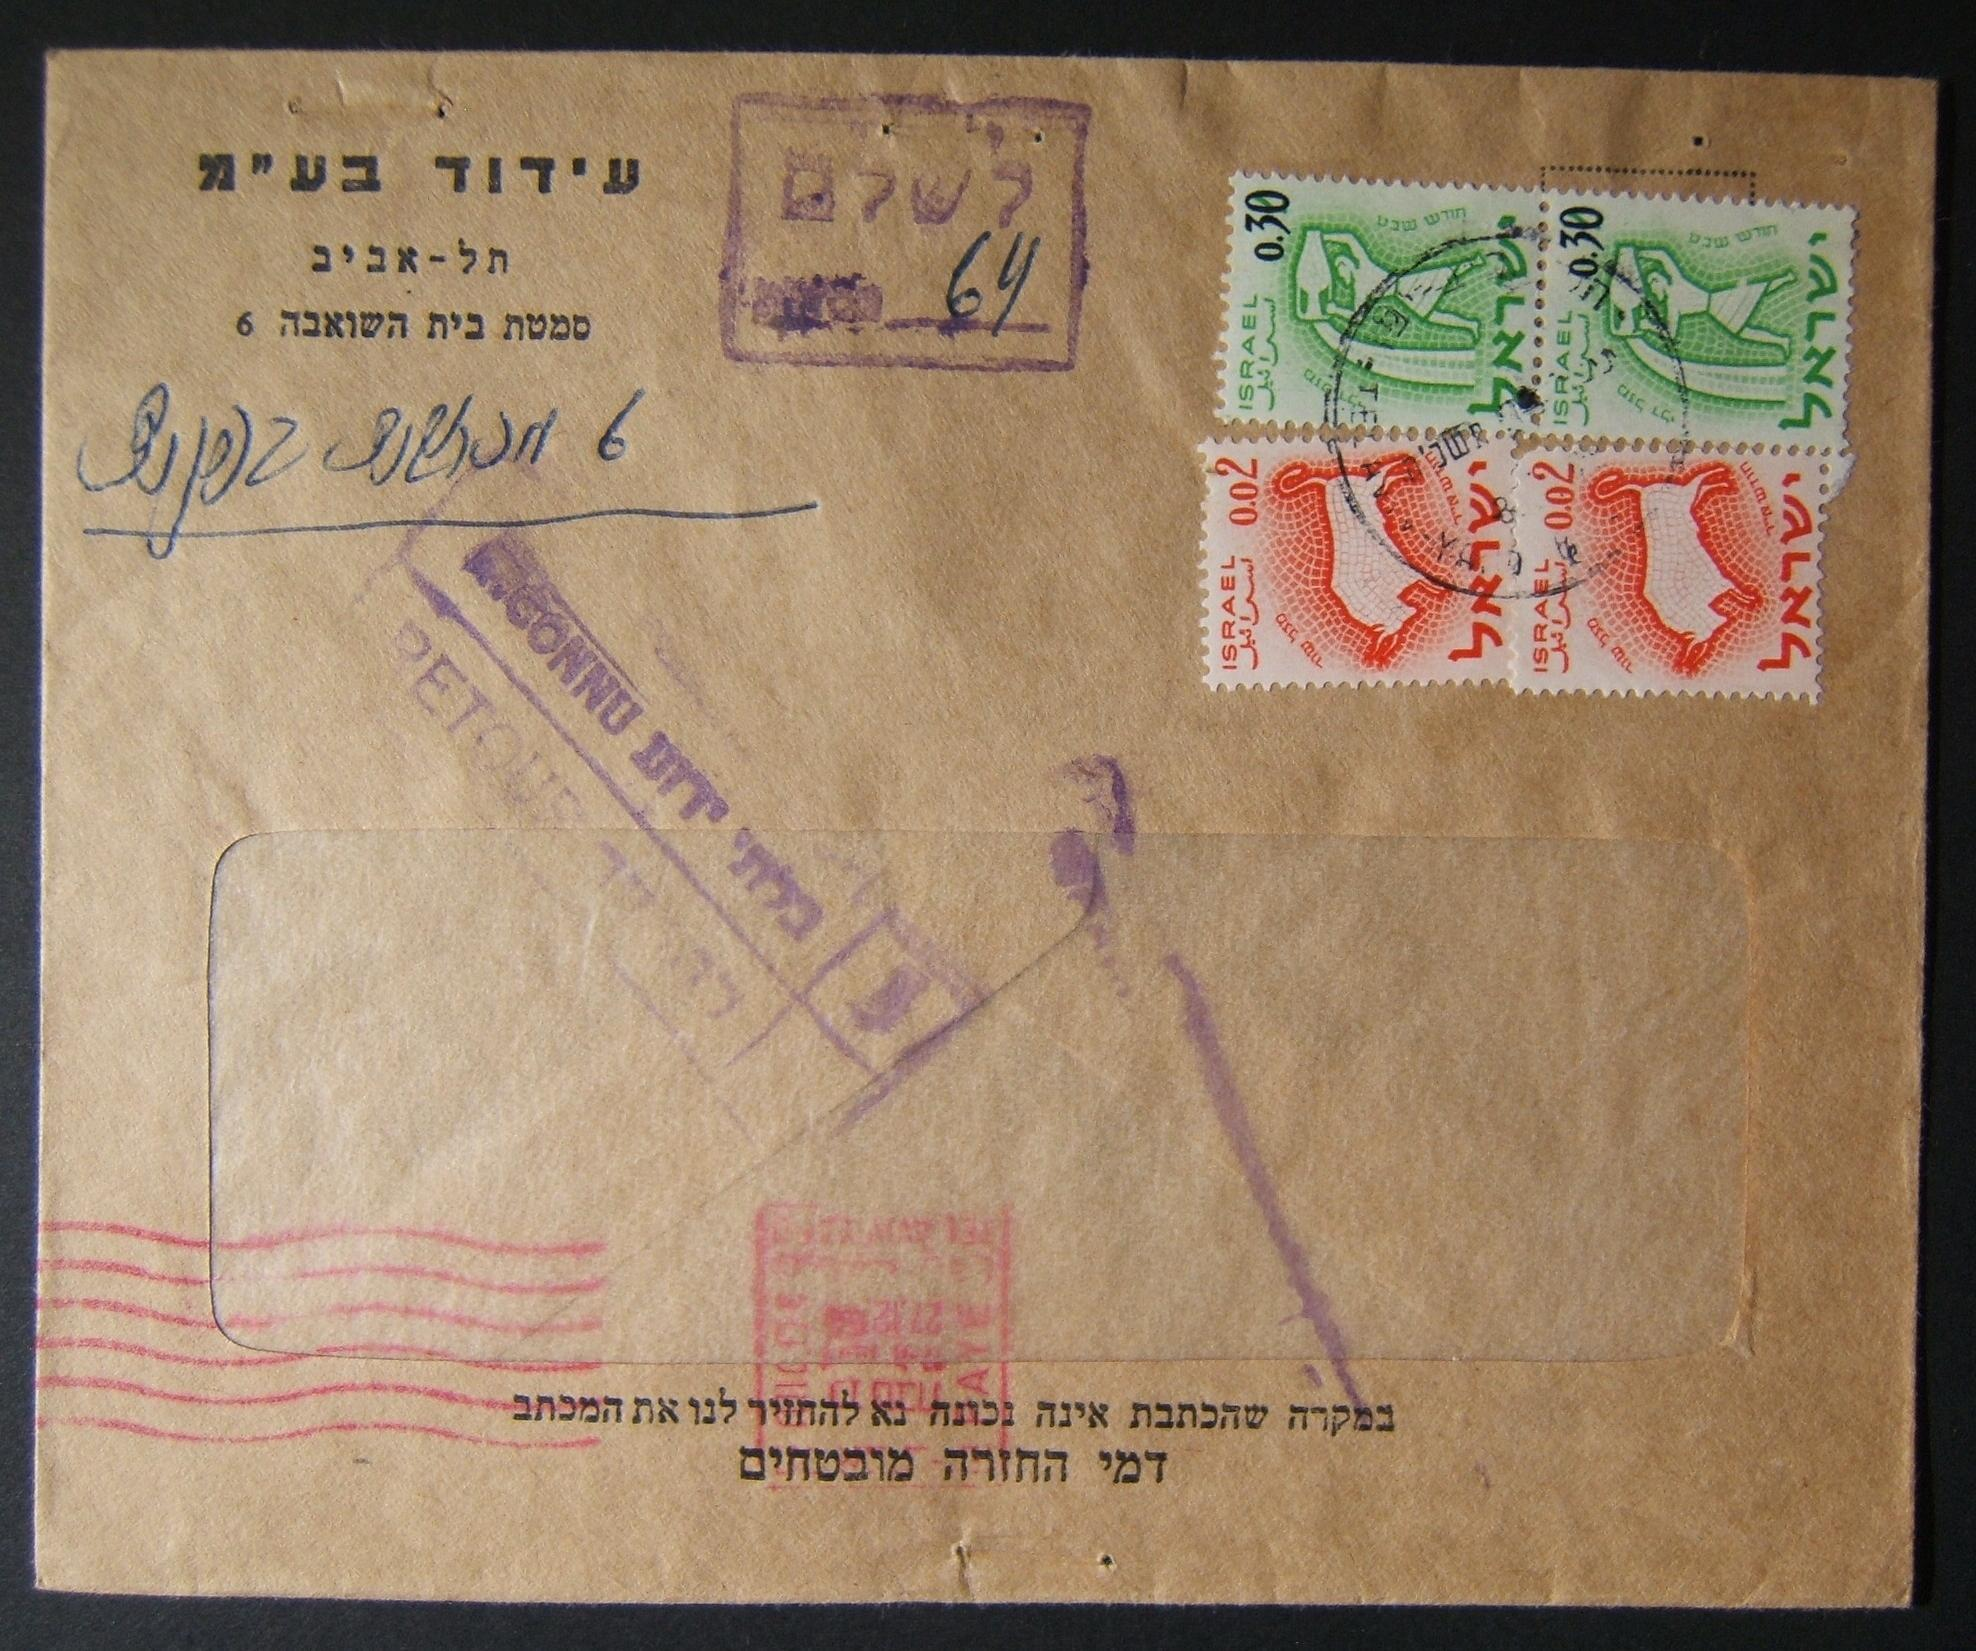 1964 domestic 'top of the pile' taxed franking: 27-12-64 printed matter commercial cover ex TLV branch of Idud Ltd. franked by machine prepayment at the DO-11 period 8 Ag PM rate b